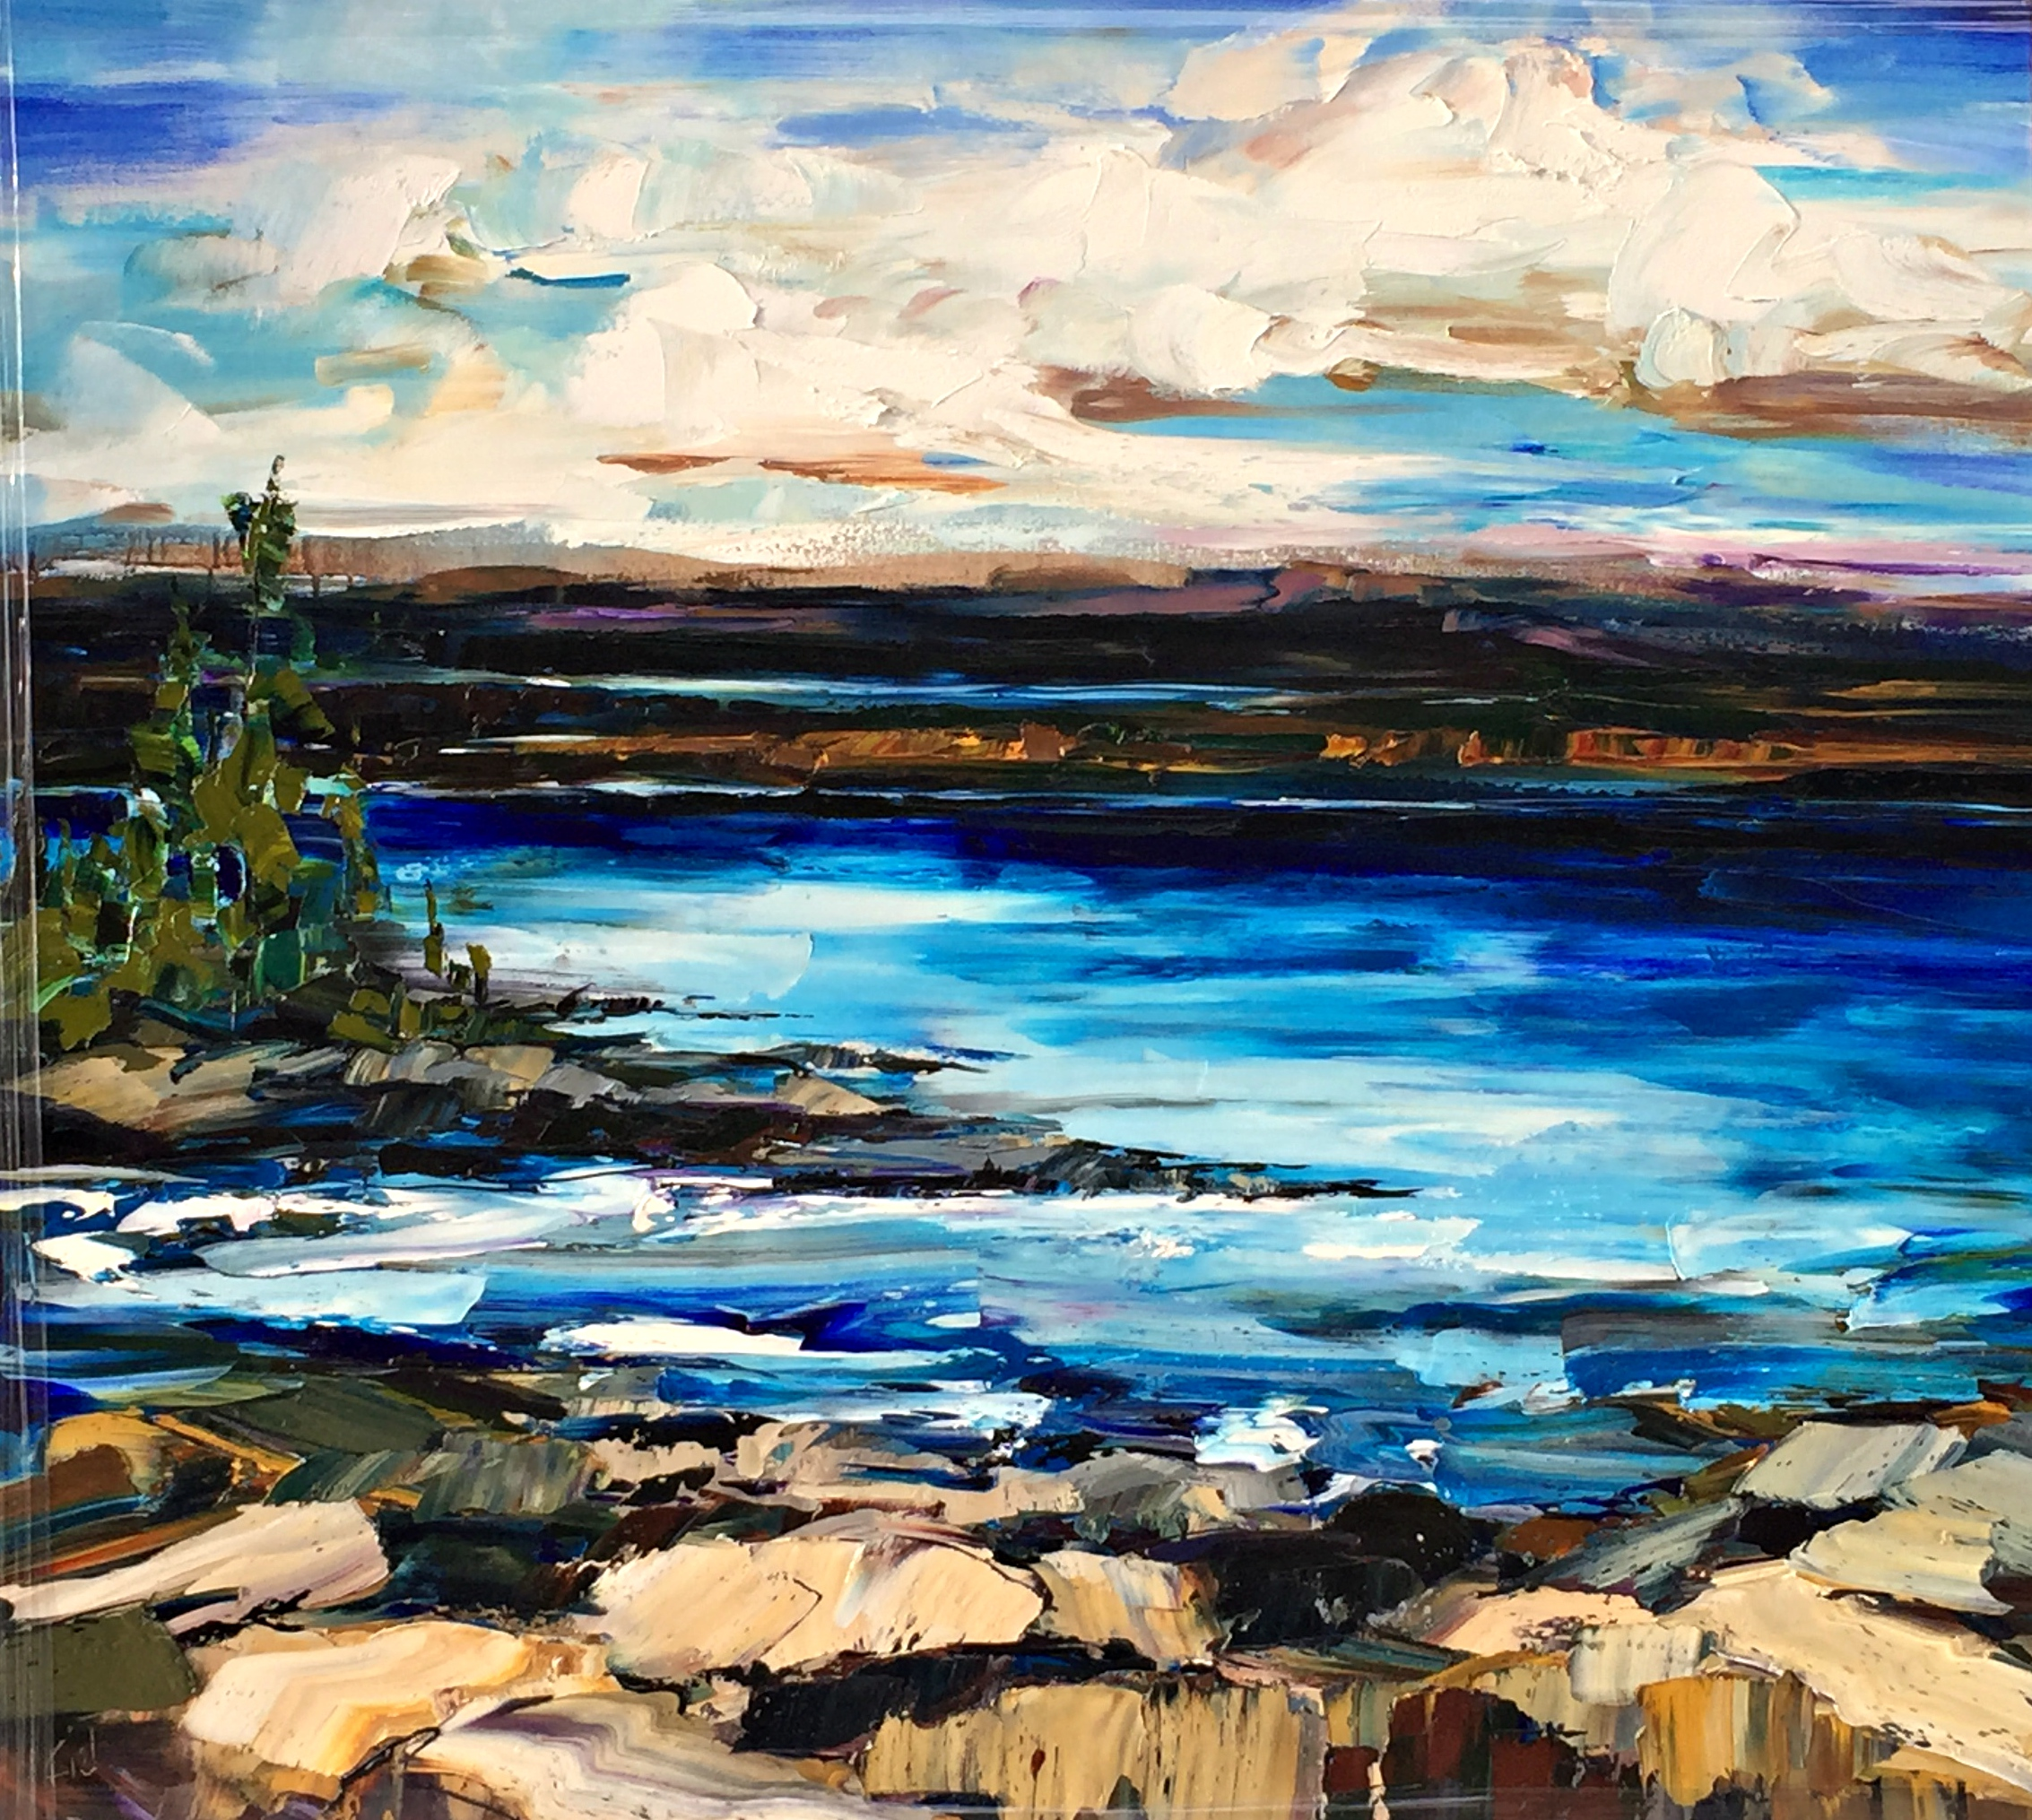 Another Day, landscape oil painting by Kimberly Kiel   Effusion Art Gallery + Cast Glass Studio, Invermere BC